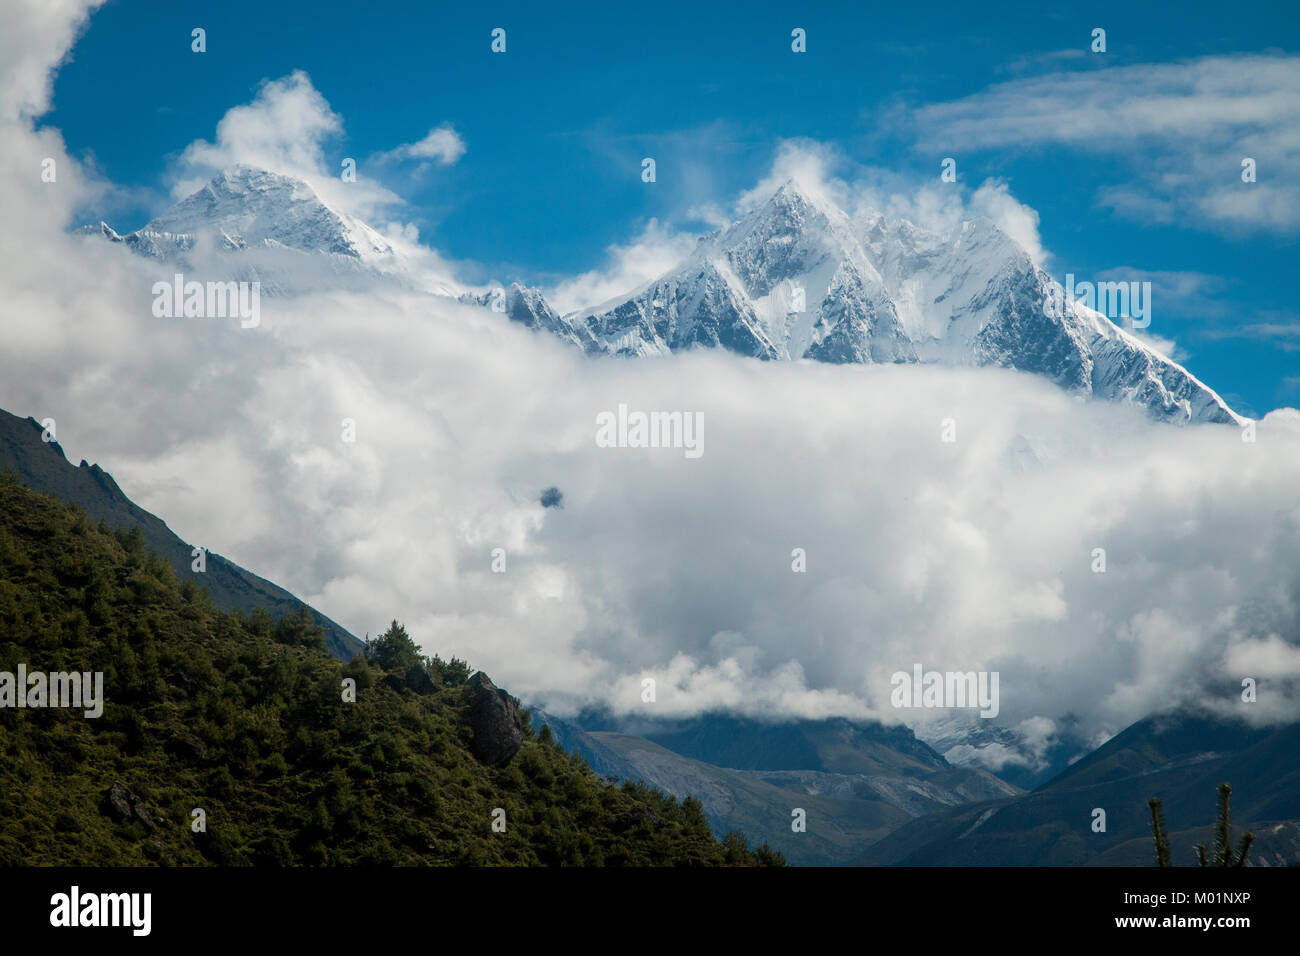 Everest and Lhotse Peaks Above Clouds, Nepal - Stock Image